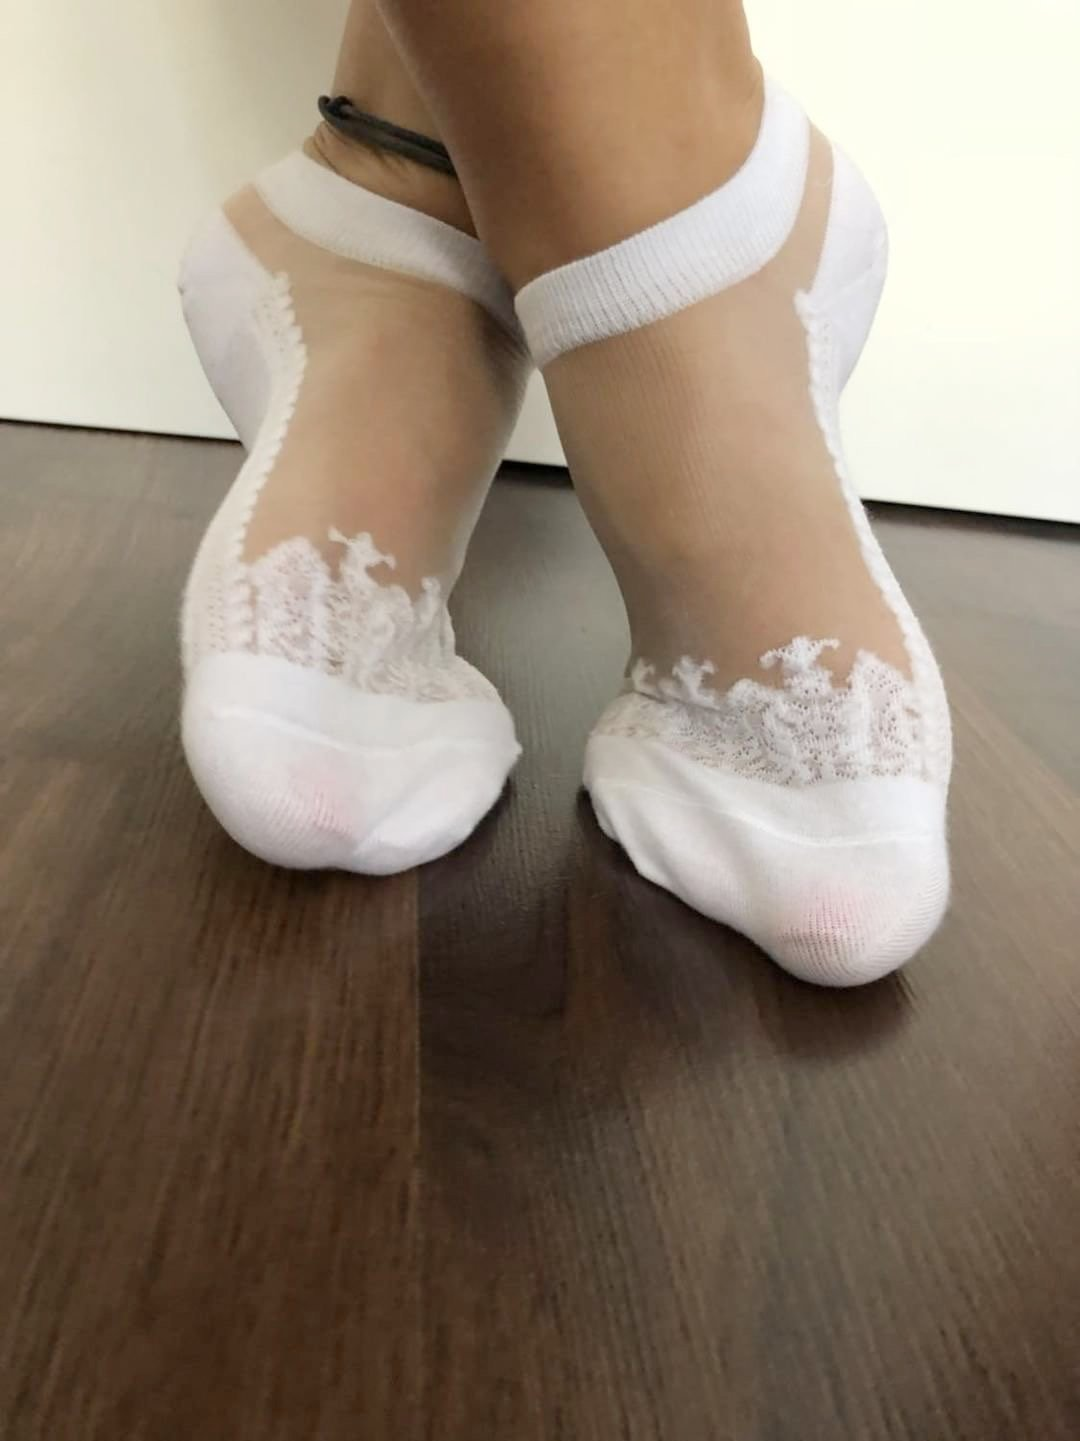 Pretty White Patterned Ankle Sheer Socks - Global Trendz Fashion®